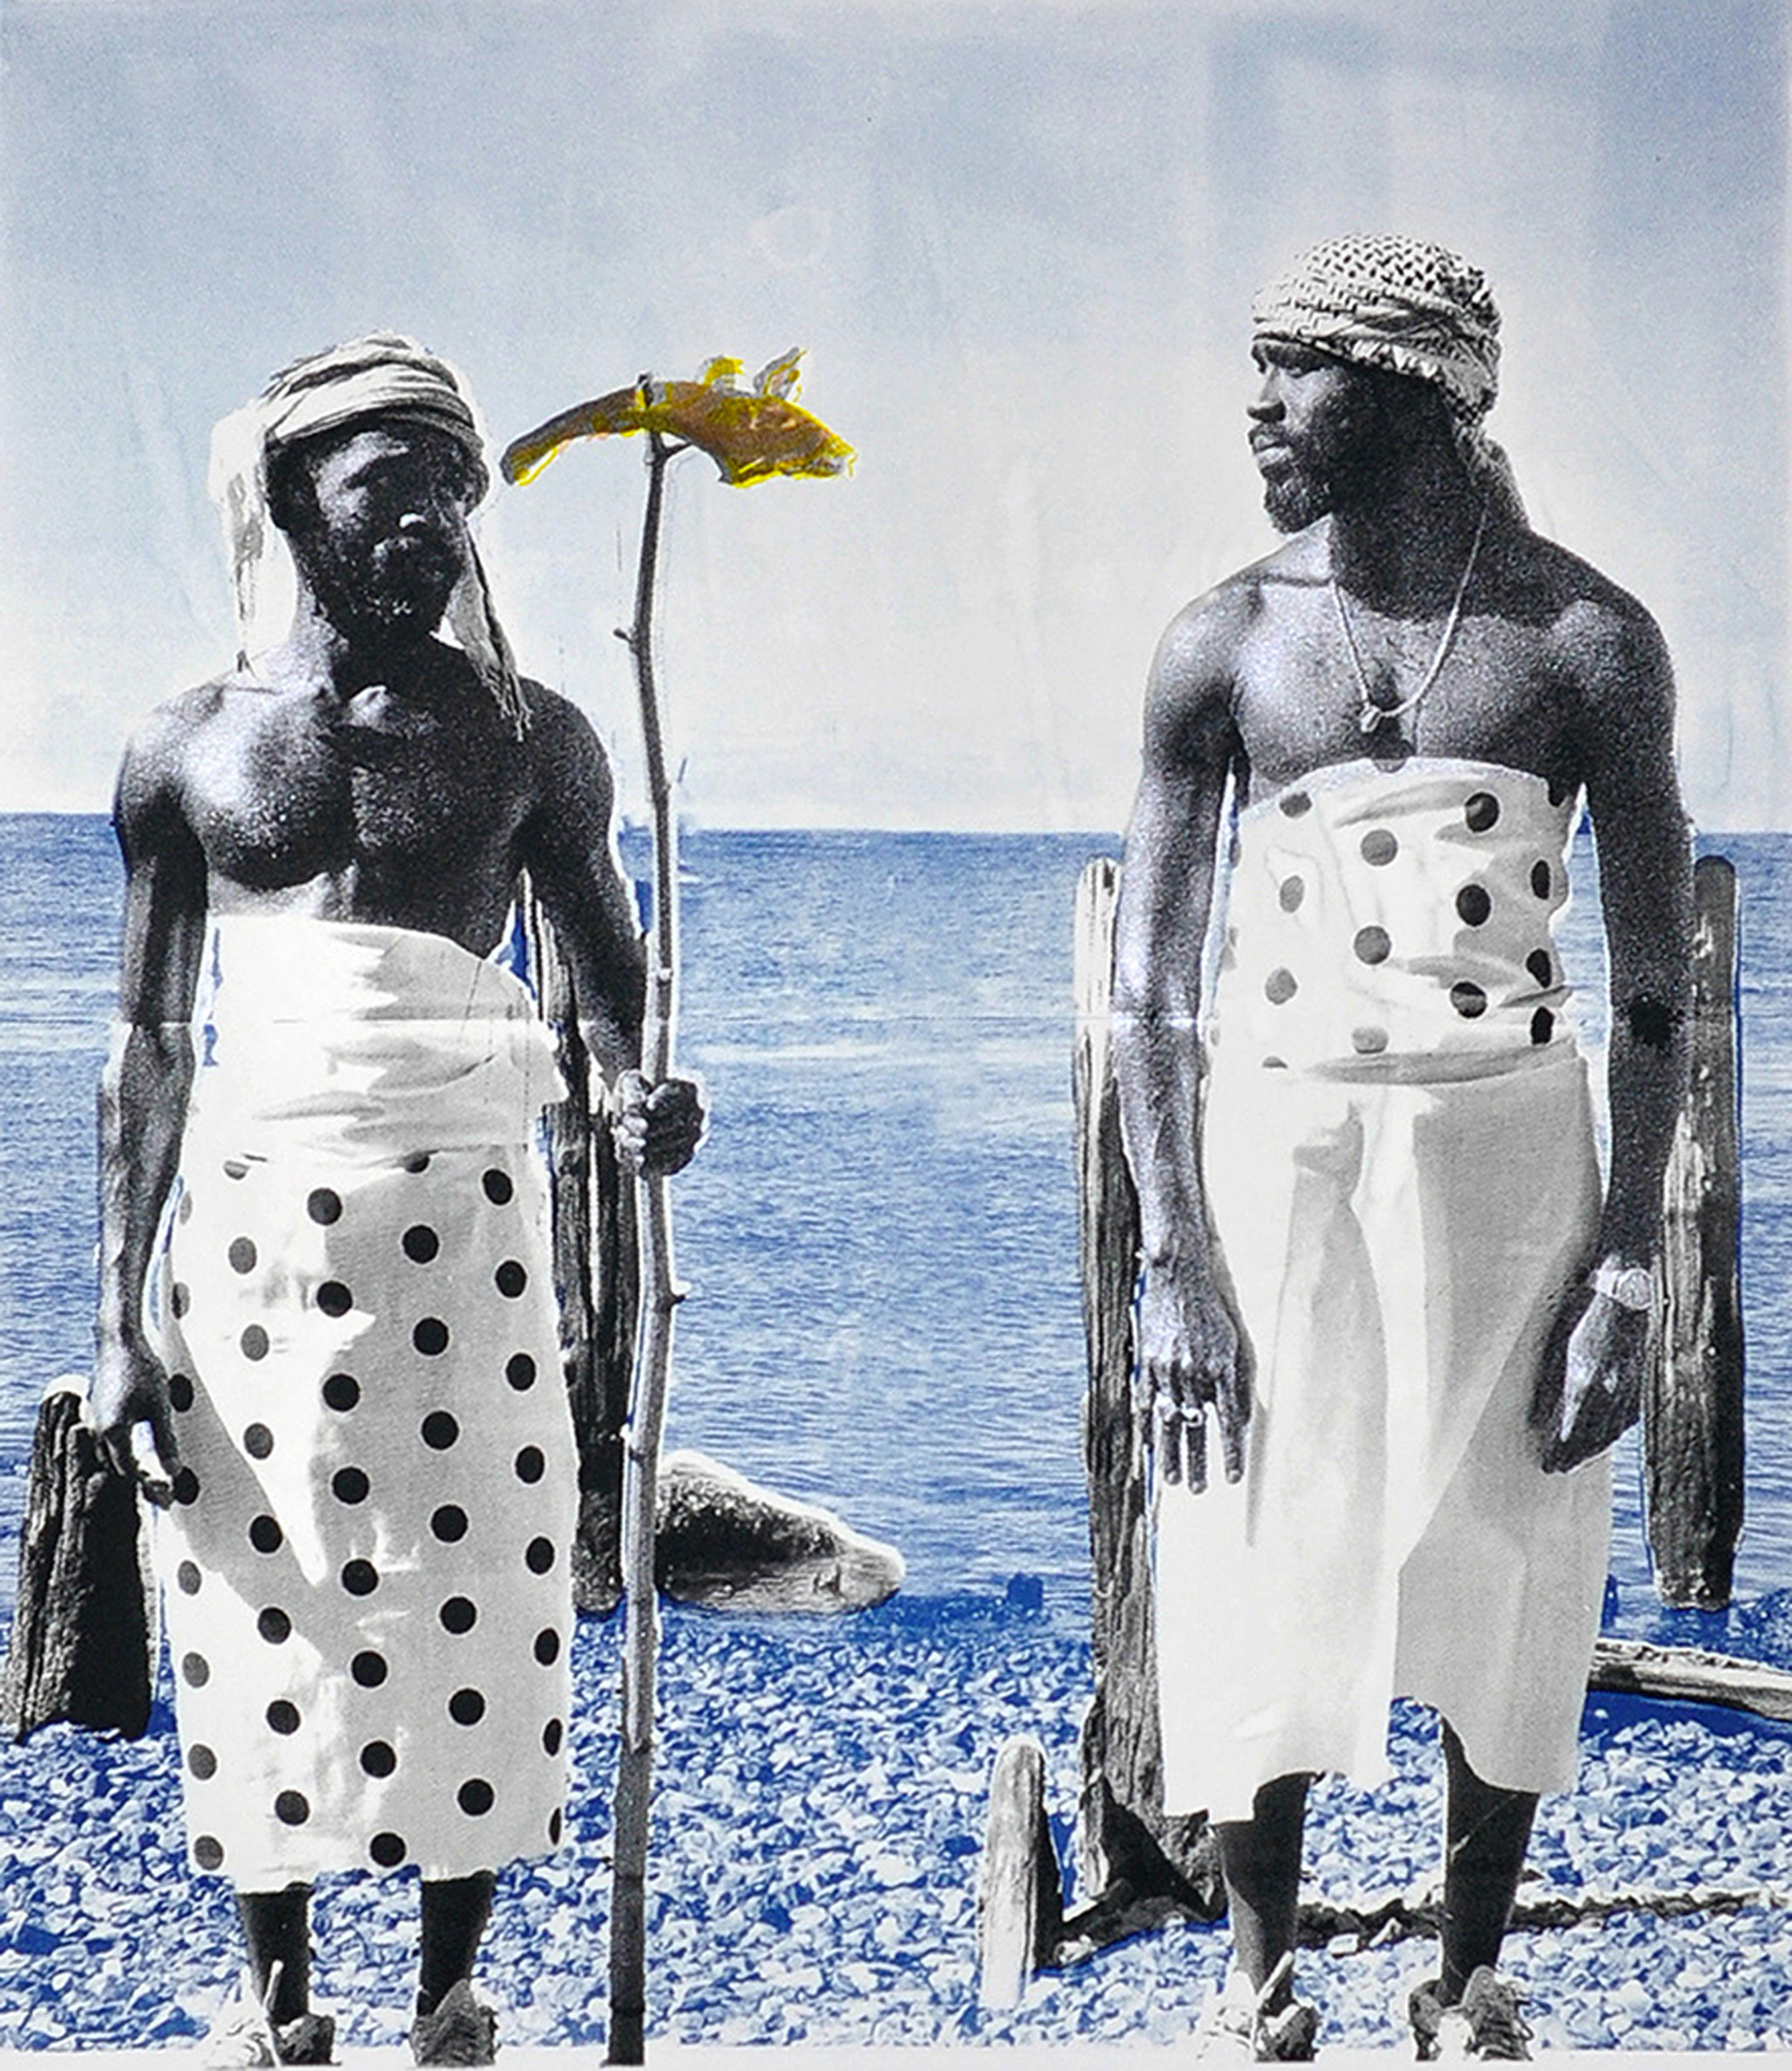 Ivan Forde,  Fishing , 2016  Silkscreen, gouache, cyanotype on paper, 20 x 18 inches (image size), 40 x 30 inches (paper size), edition of 3  Special editions:   Silkscreen, gouache, cyanotype, ceramic glaze on paper, 40 x 33 inches (image and paper size), edition of 3  Silkscreen and cyanotype on fabric, 40 x 33 inches (image size), 46 x 39 inches (fabric size), edition of 2   Inquire